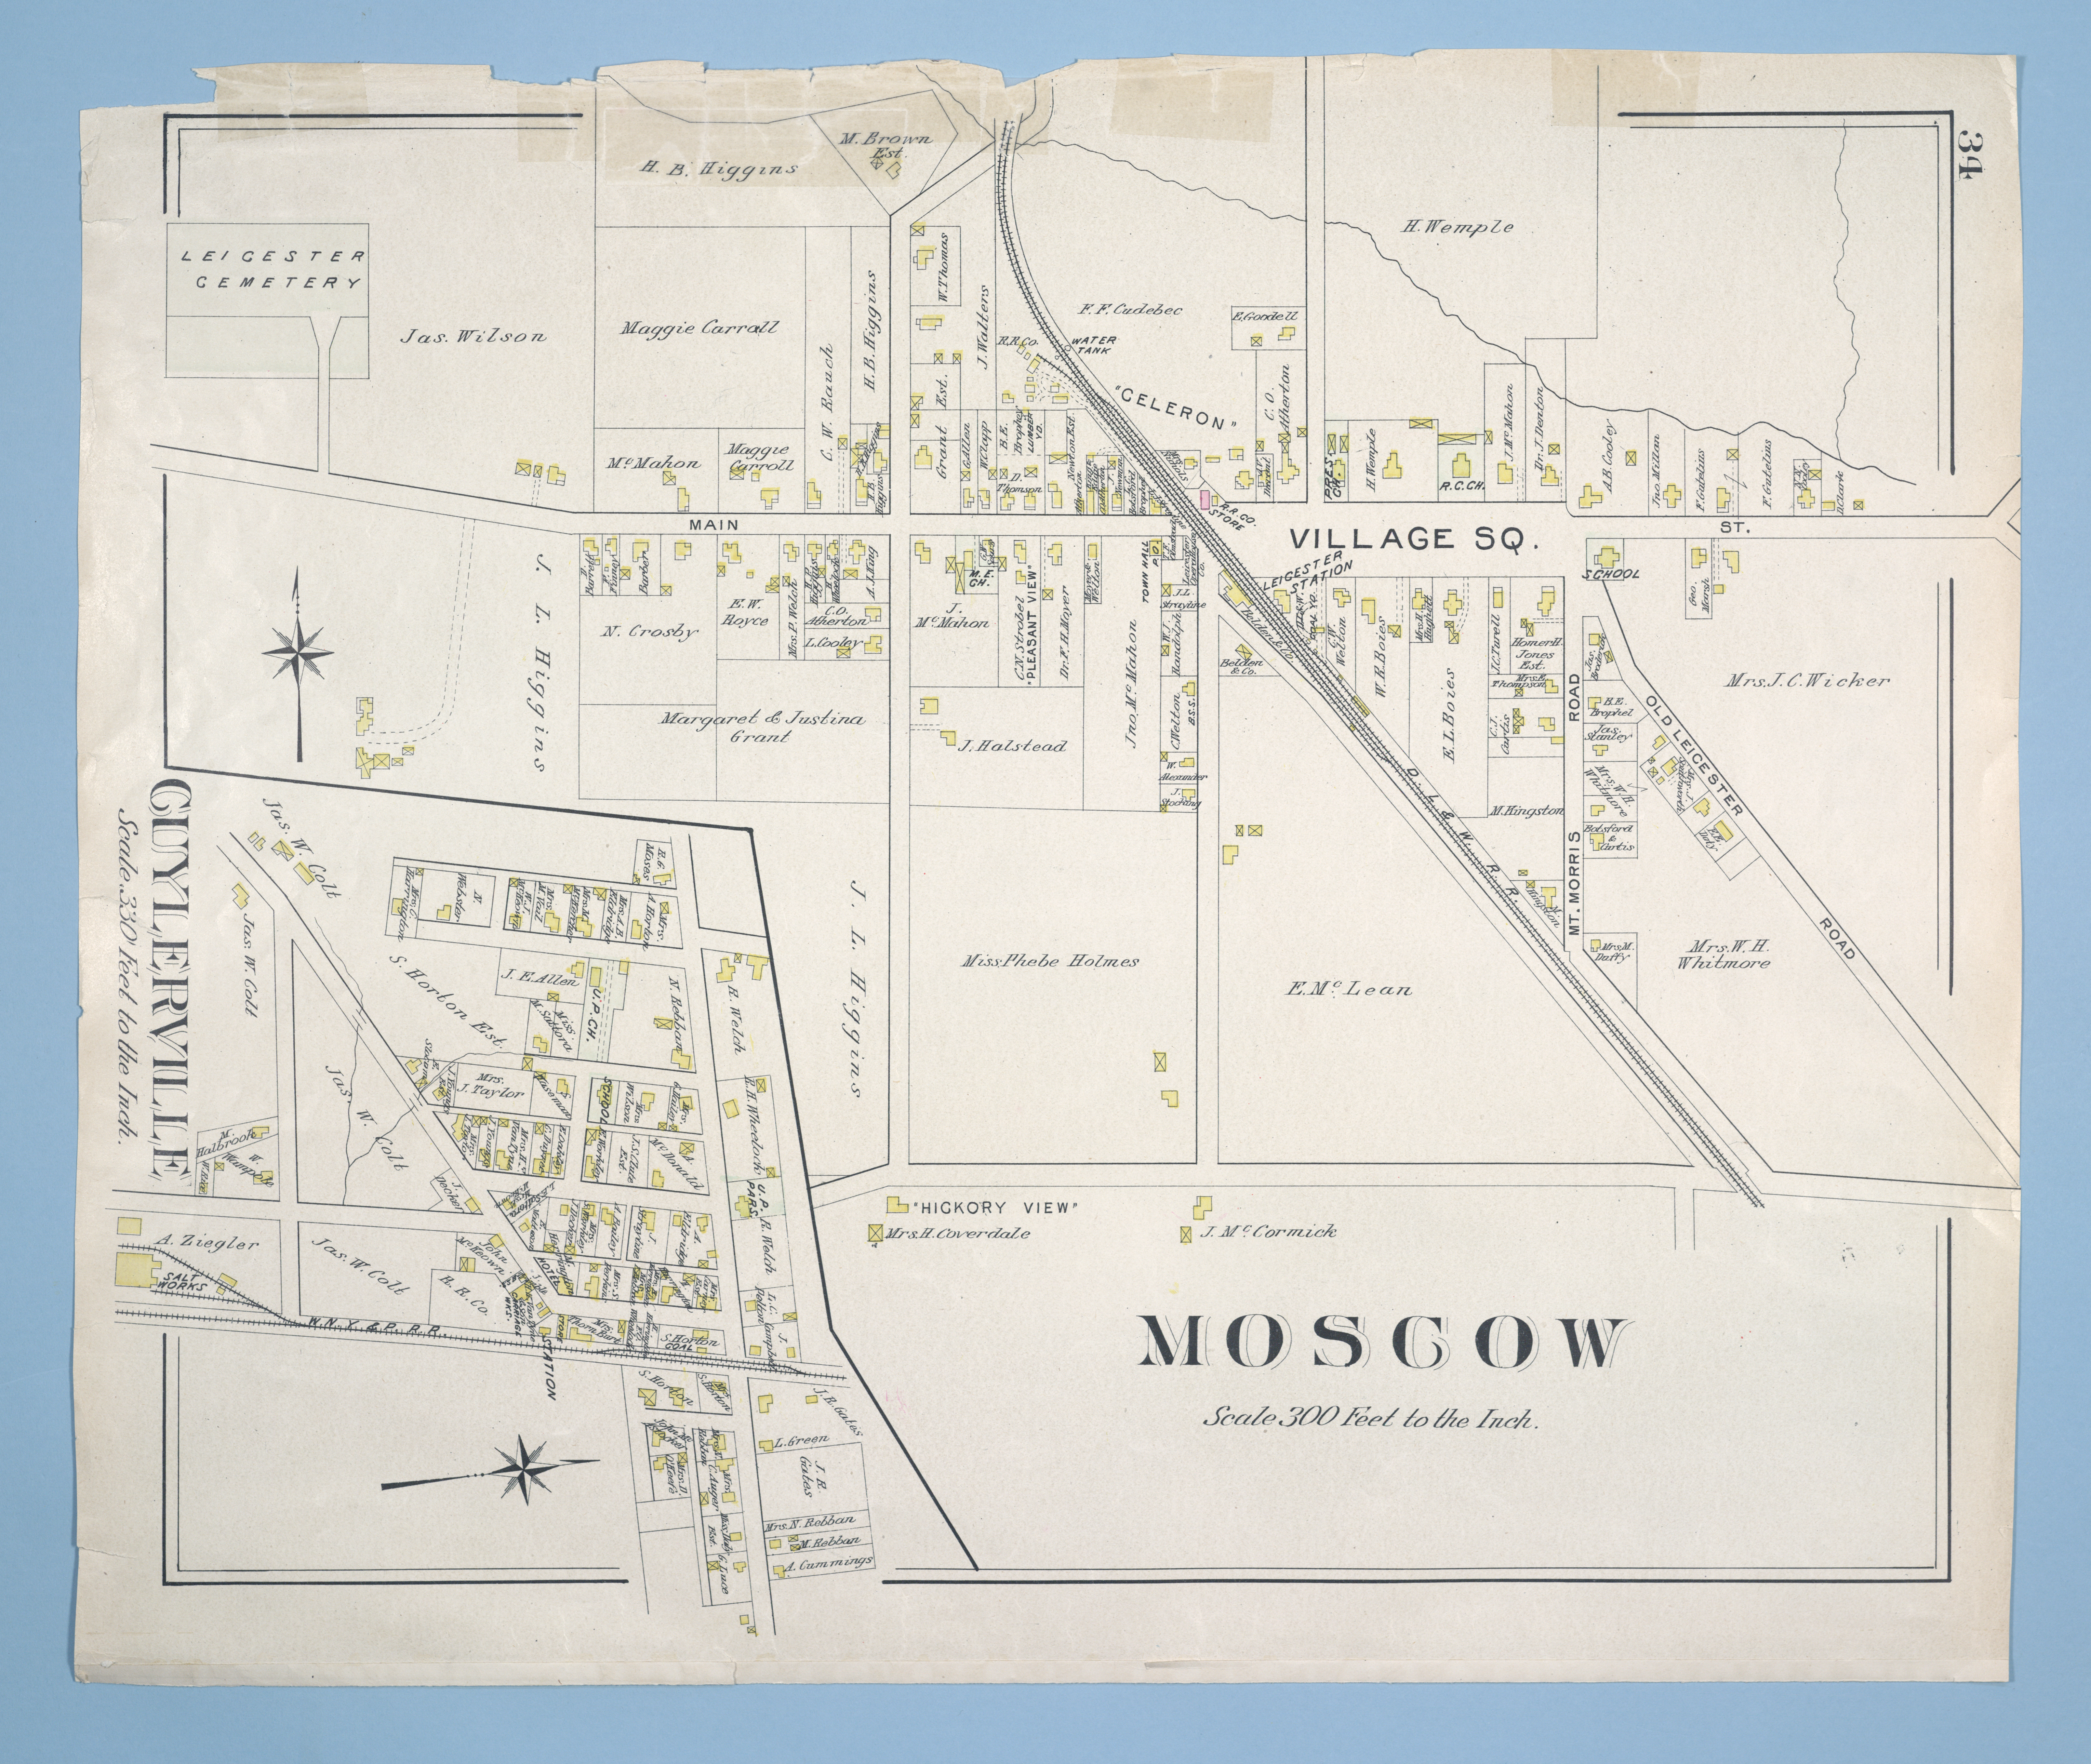 MoscowPg34